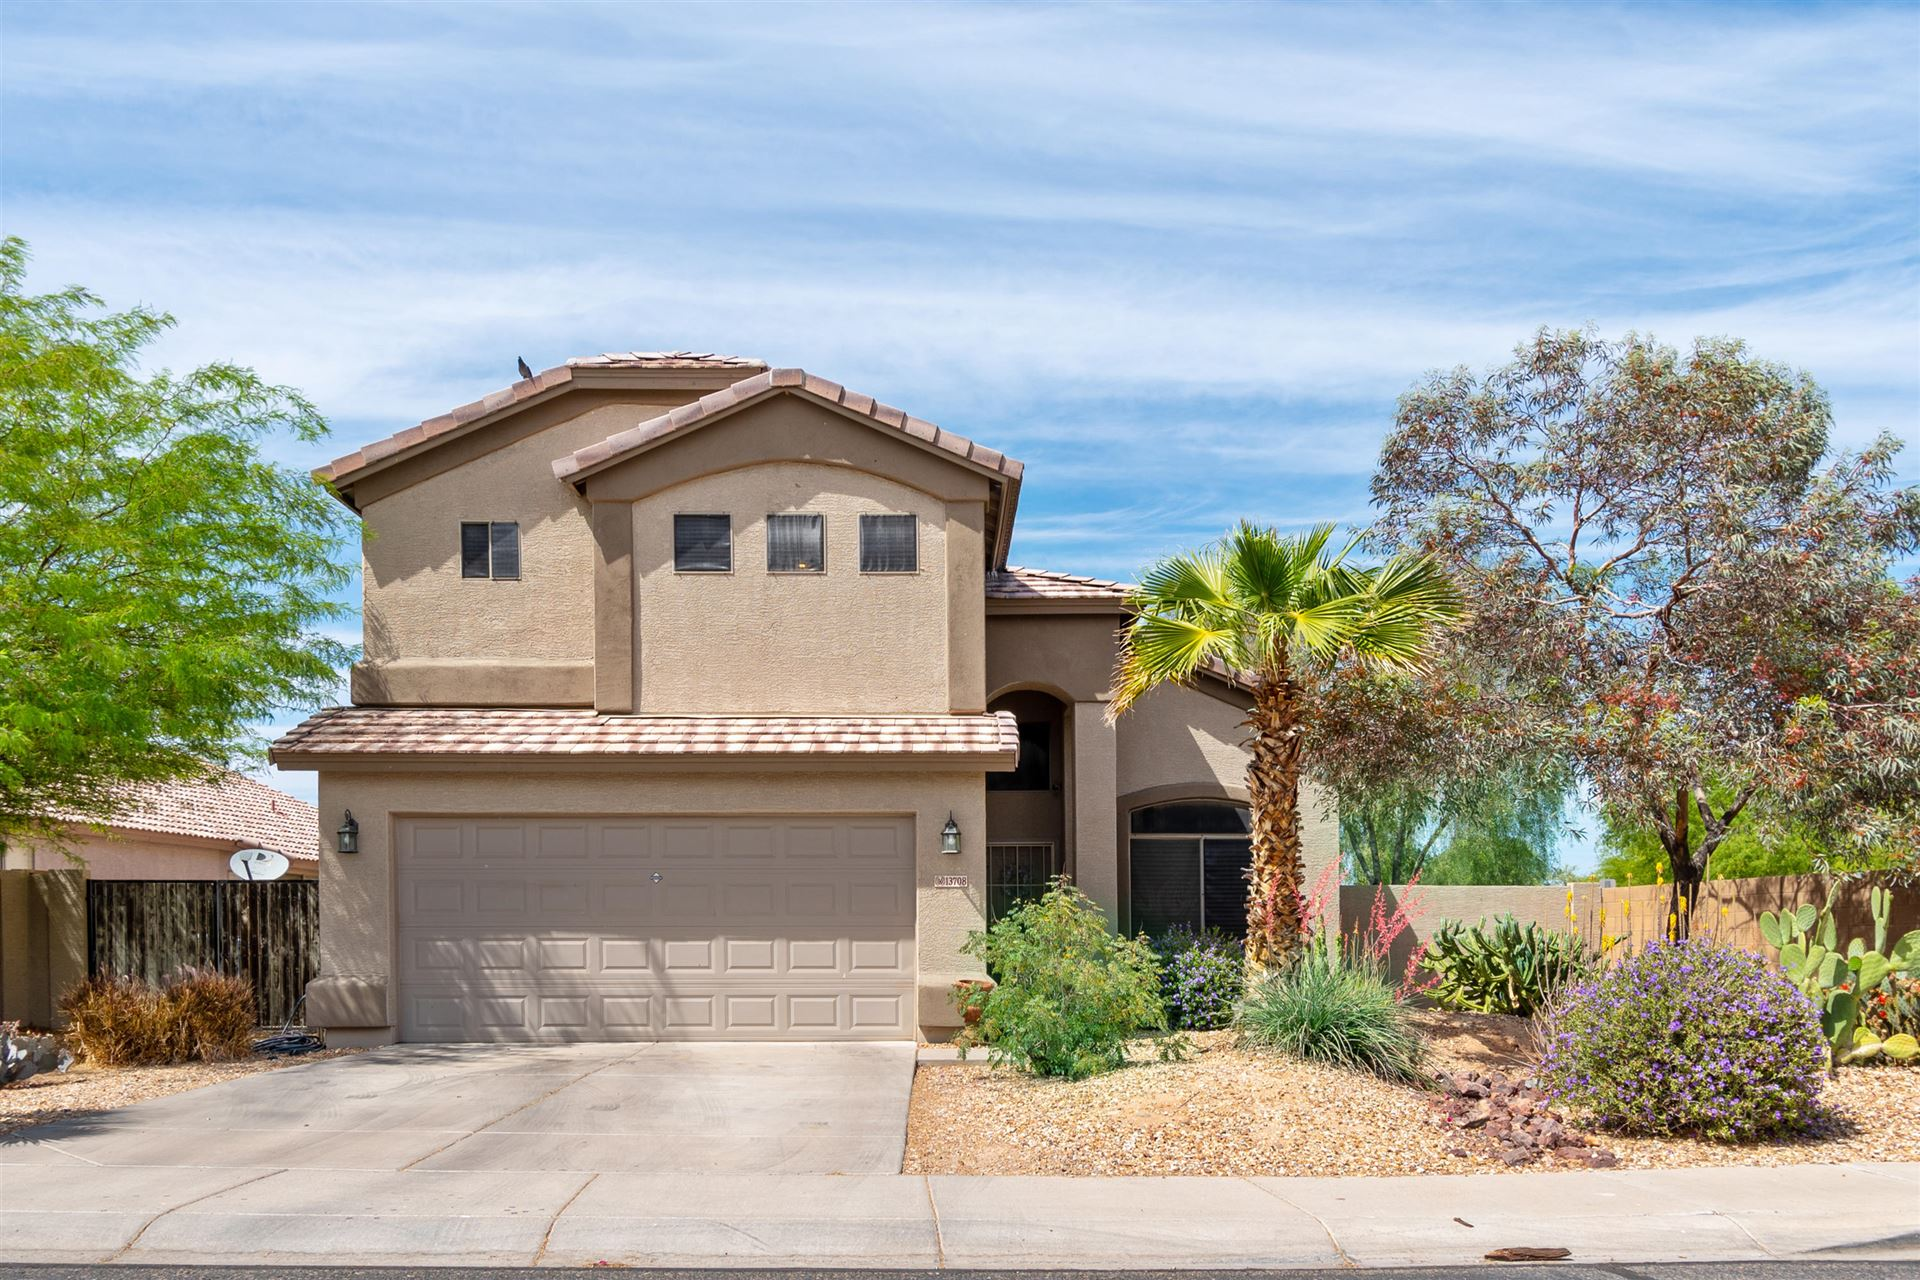 Photo of 13708 W SOLANO Drive, Litchfield Park, AZ 85340 (MLS # 6230856)